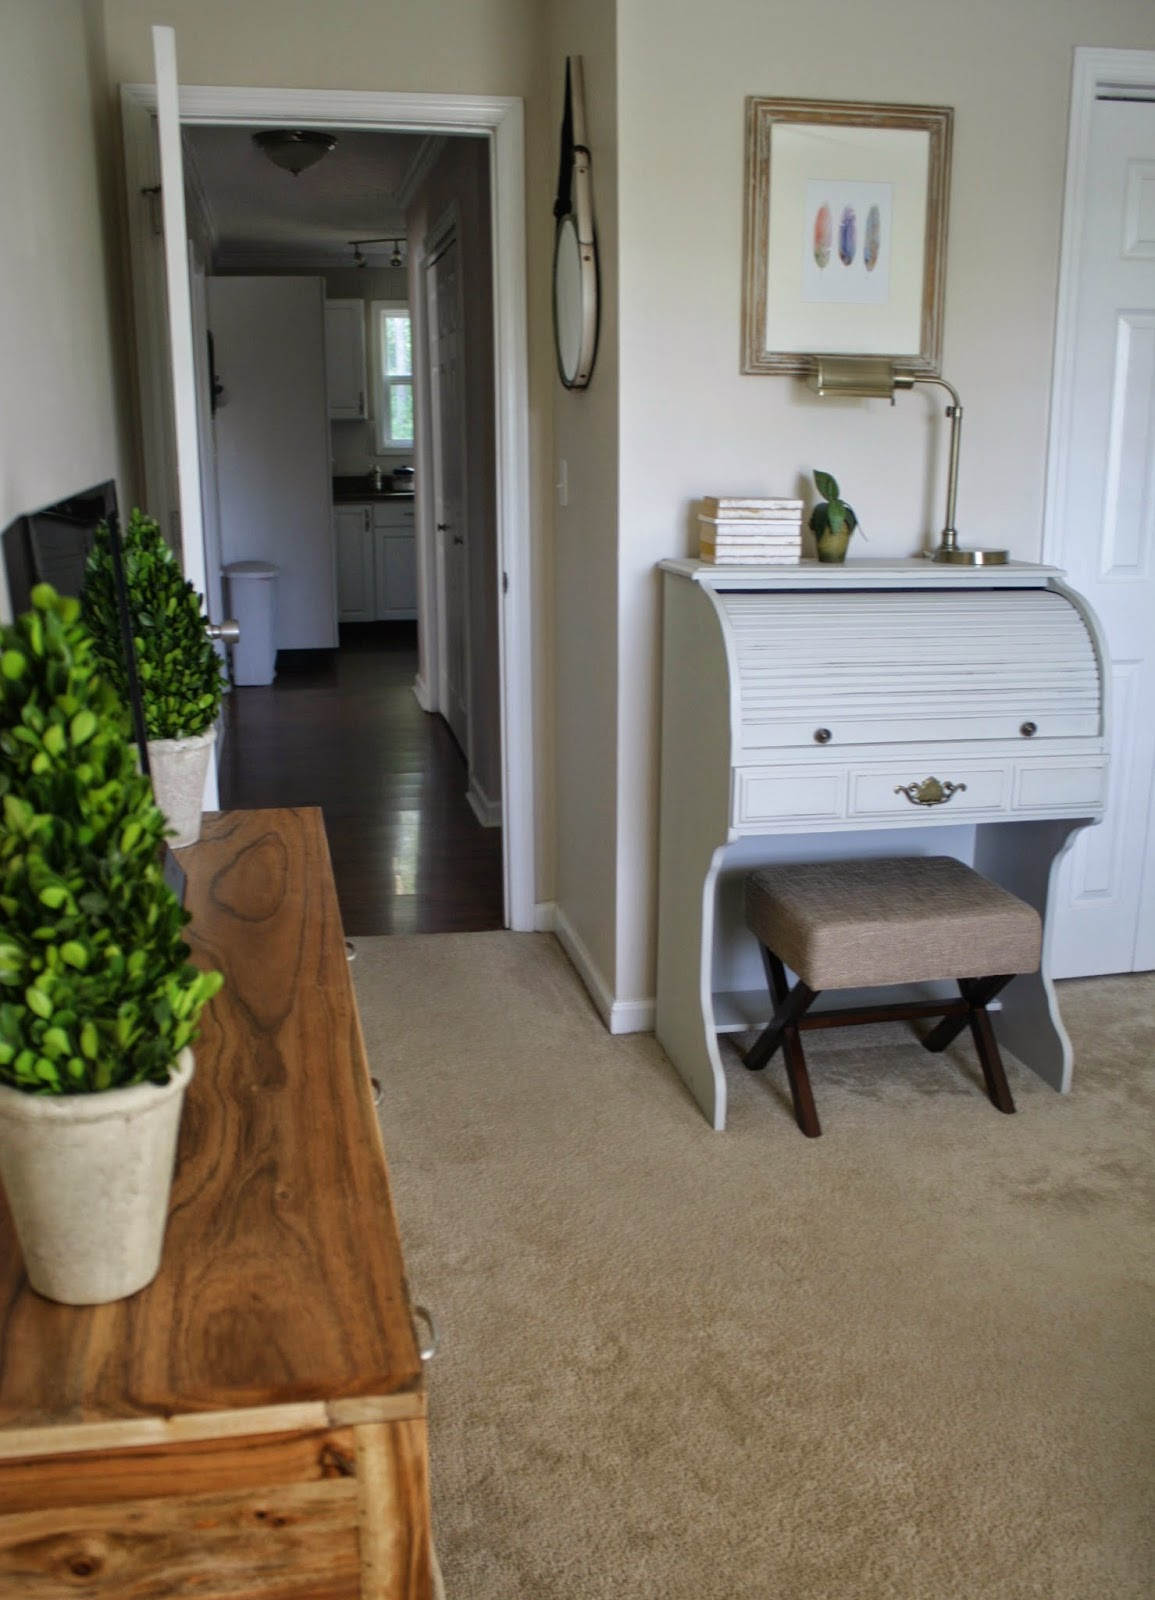 http://www.livealittlewilderblog.com/2014/04/the-home-office-makeover.html